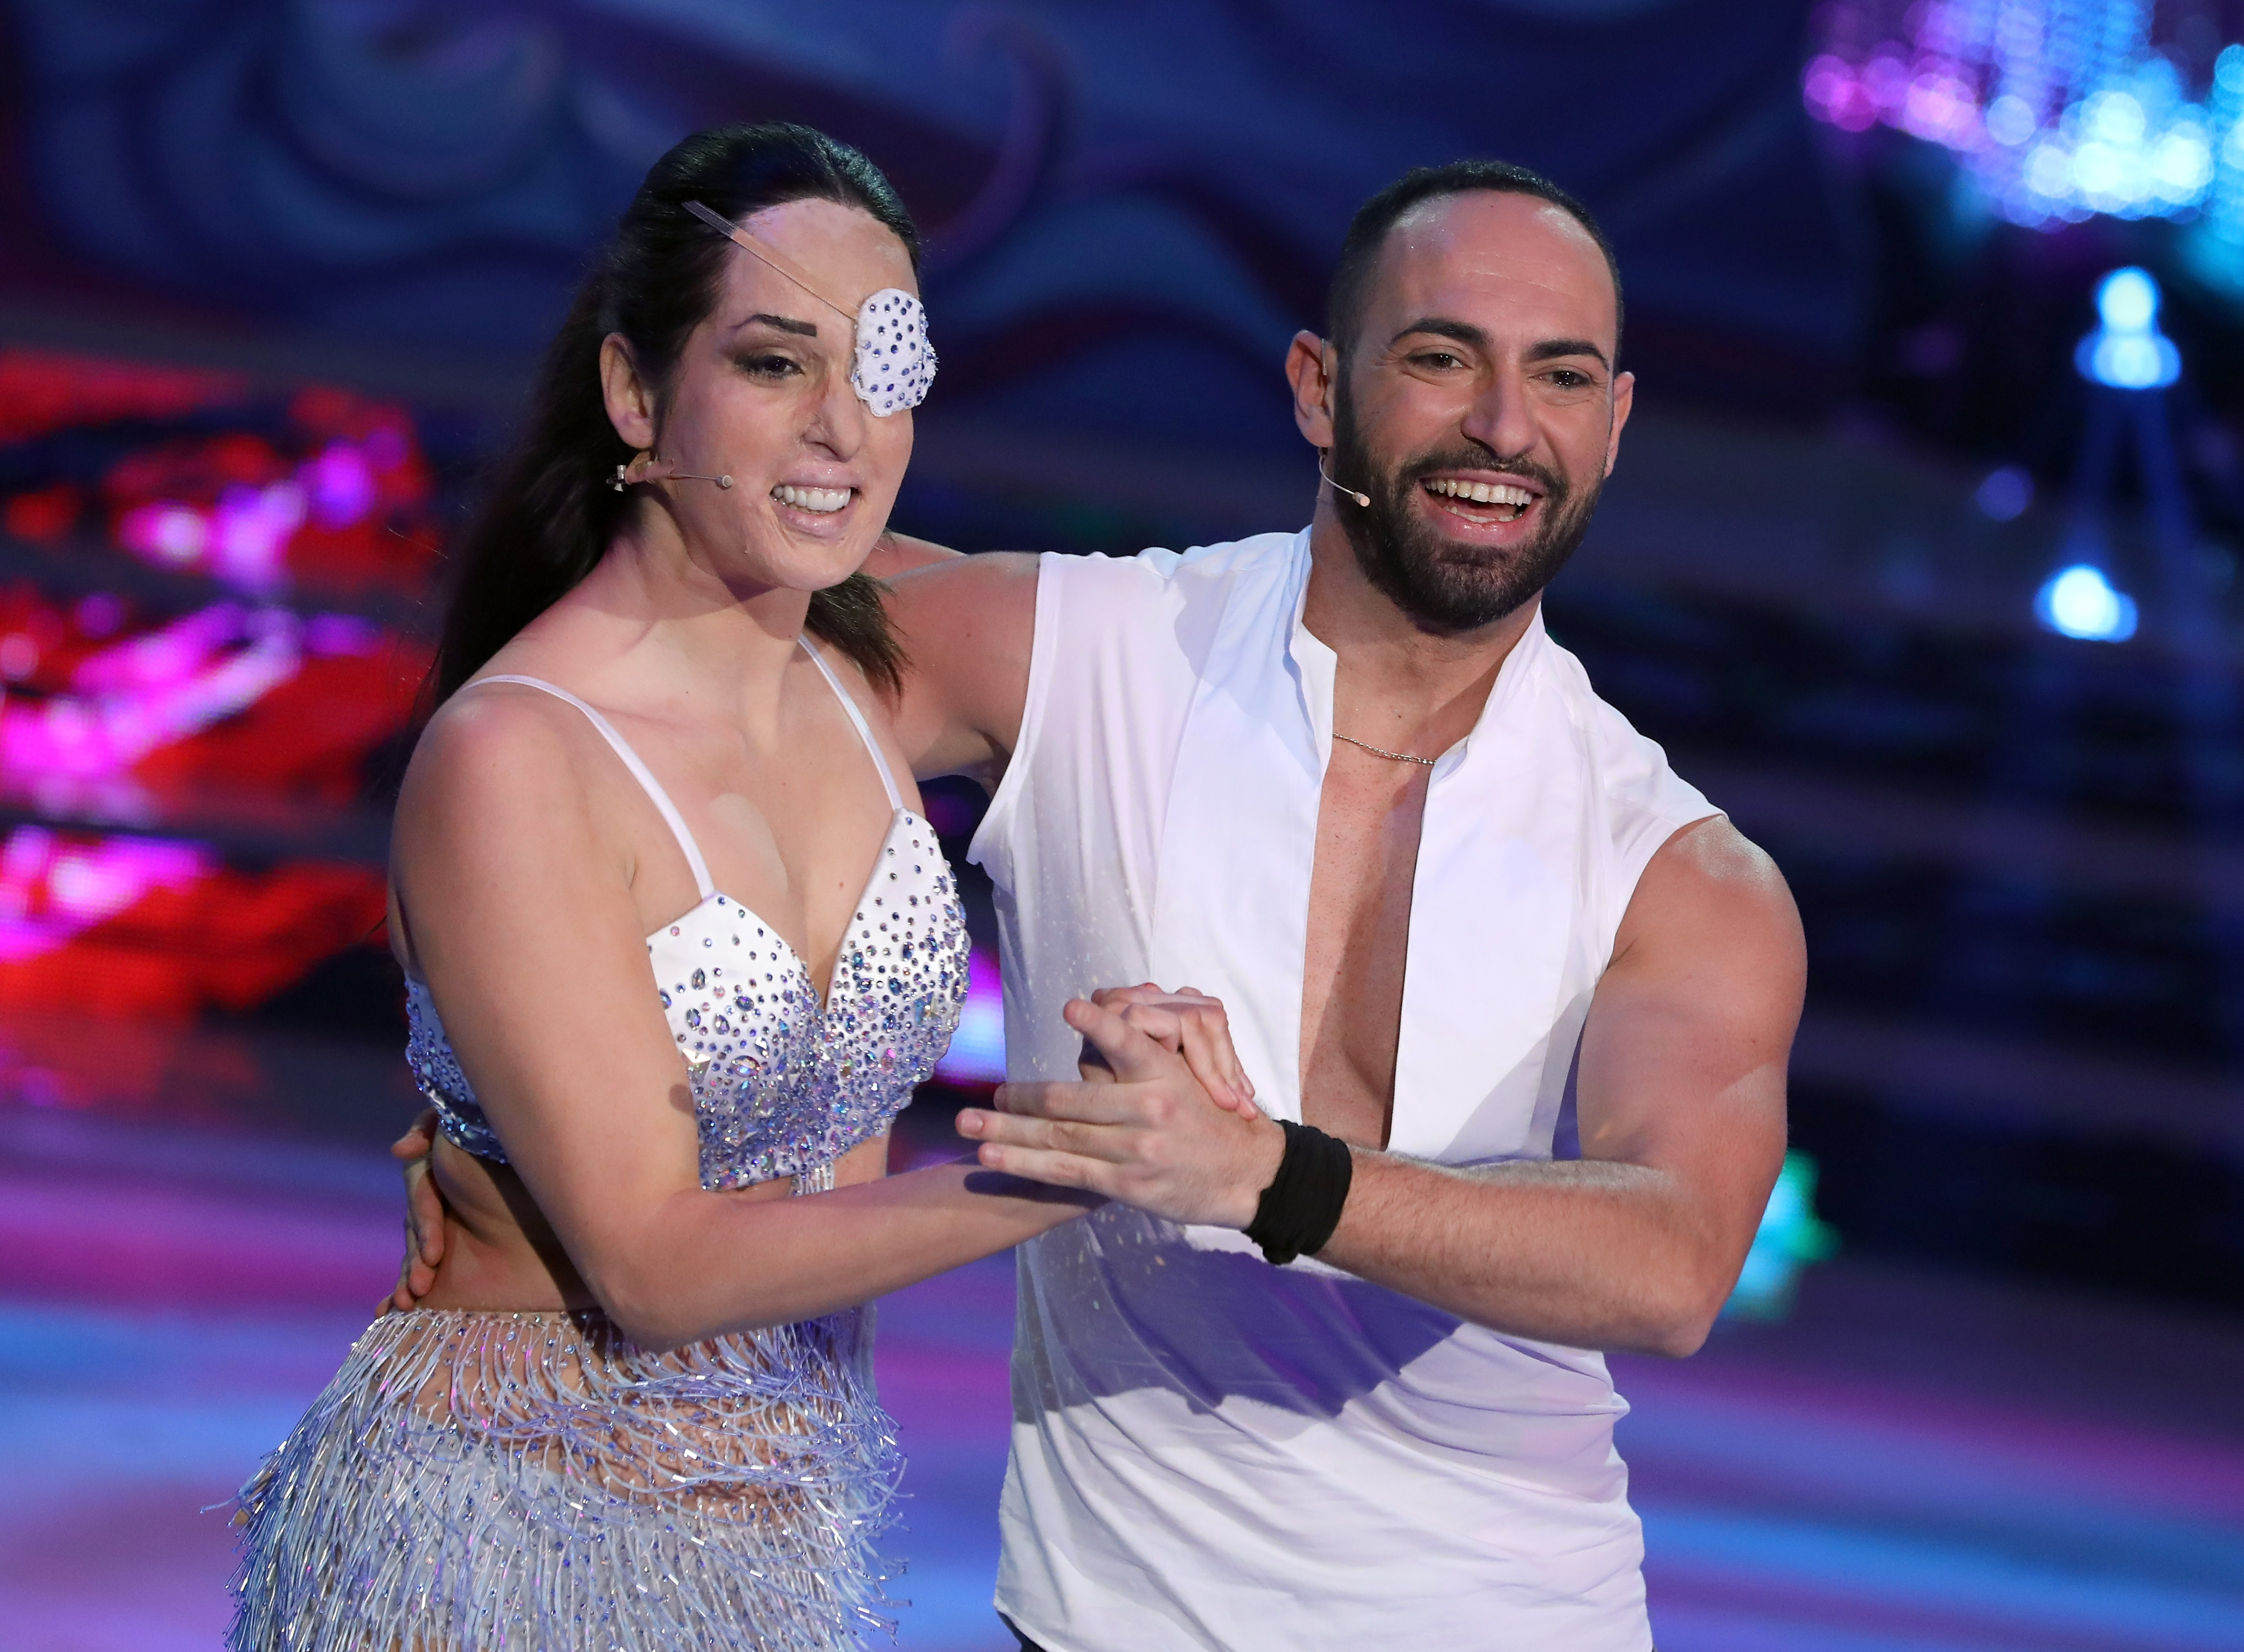 Gessica Notaro and her dance partner Stefano Oradei perform on the Italian TV show 'Ballando Con Le Stelle' (Dancing with the Stars) at RAI Auditorium on March 10, 2018, in Rome, Italy. (Getty Images)